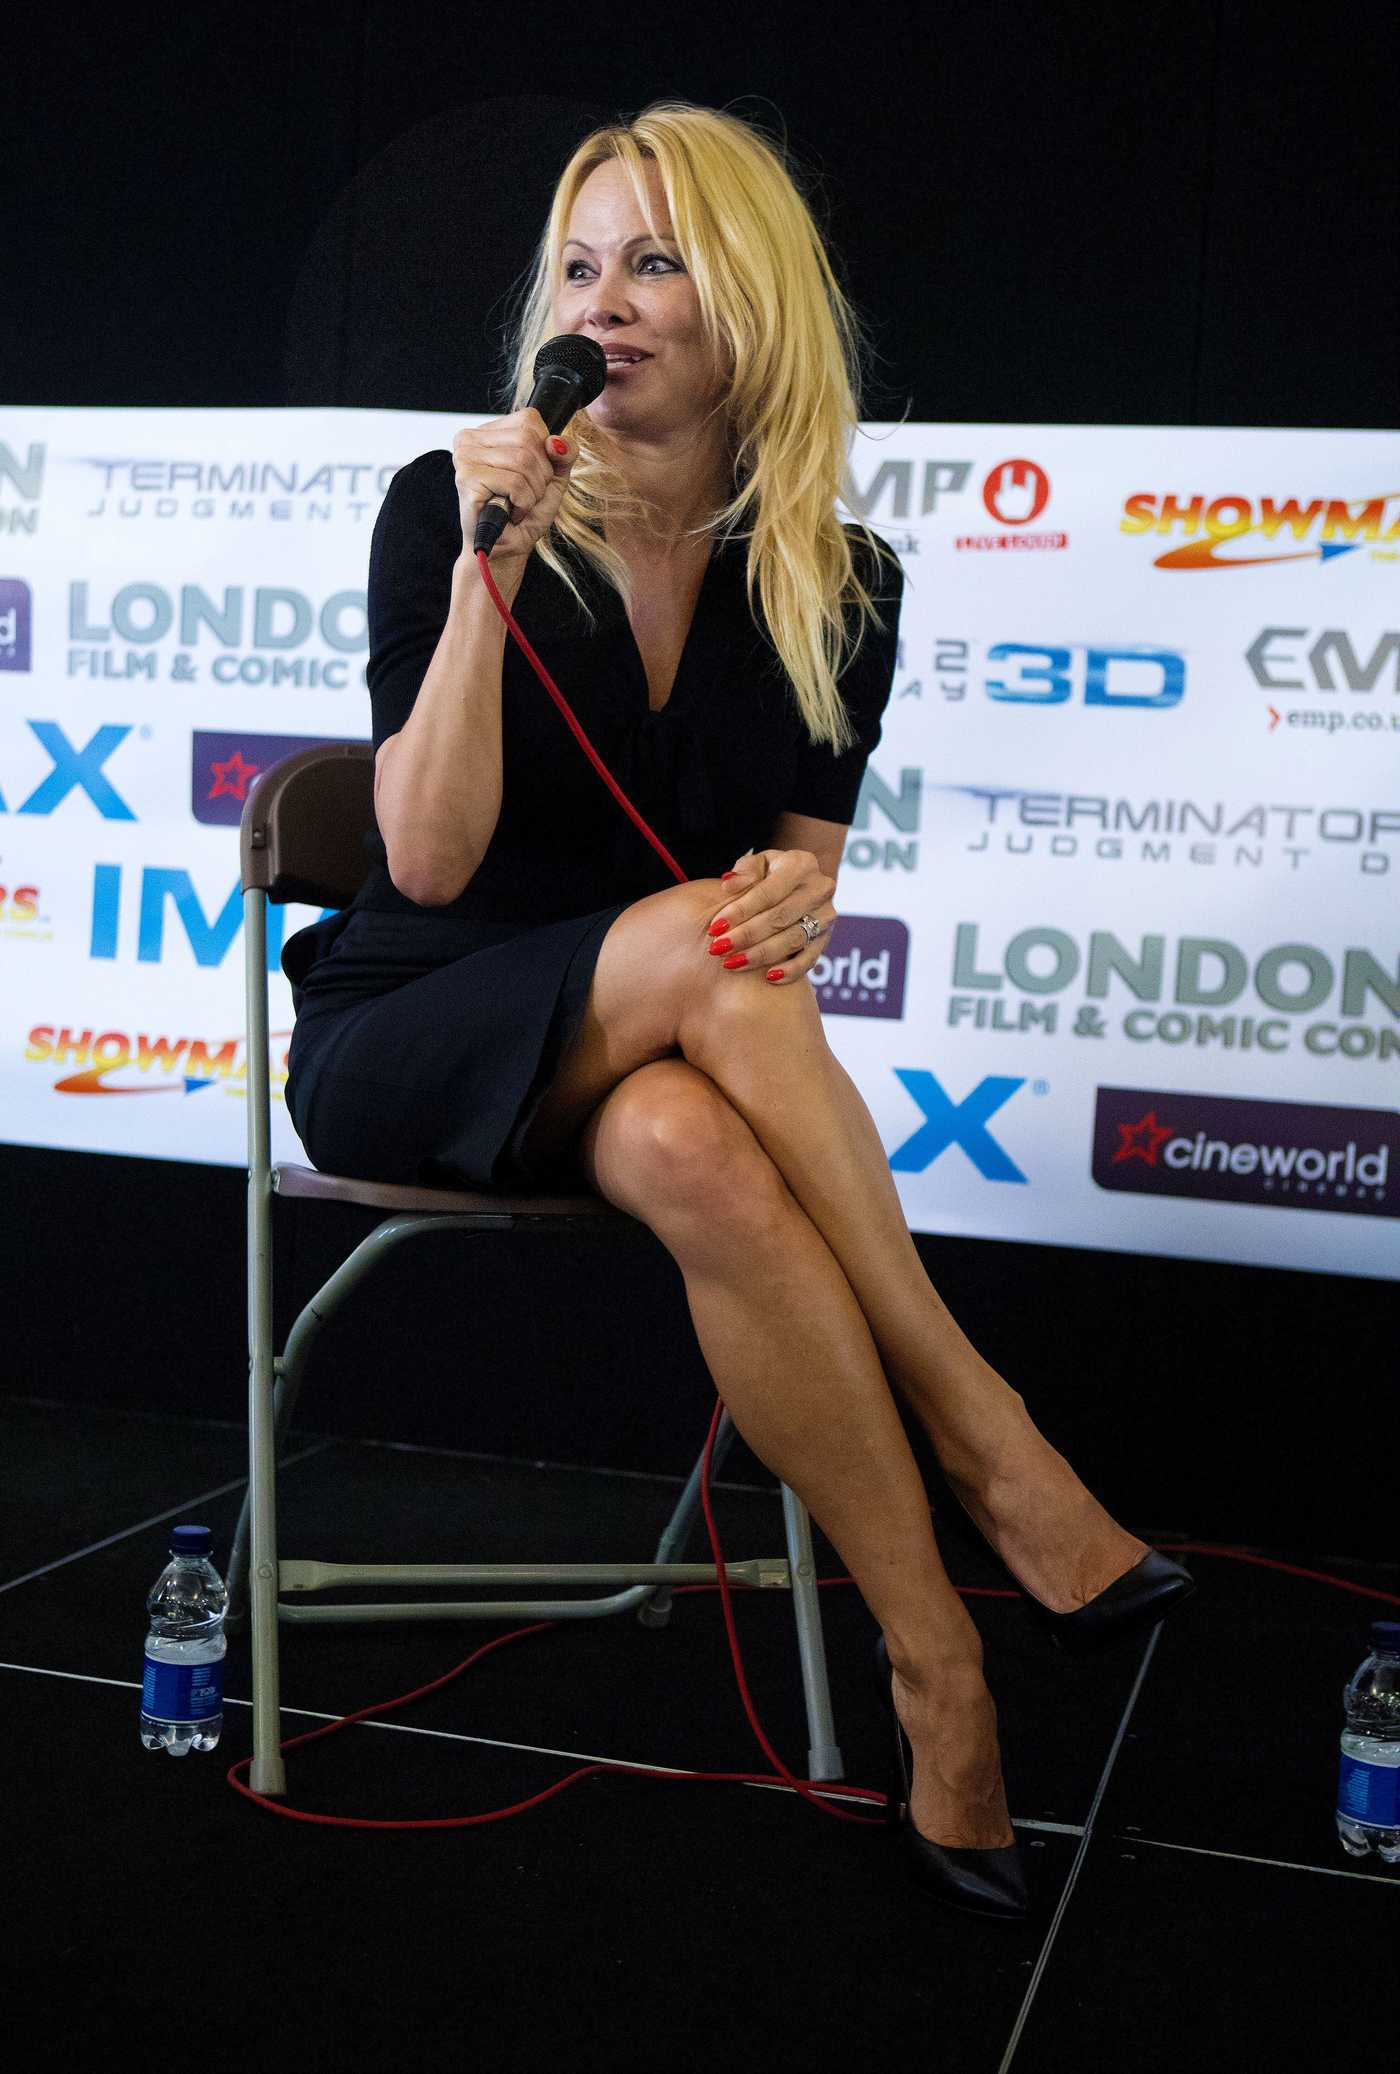 Pamela Anderson at a London Film and Comic Con 07/30/2017